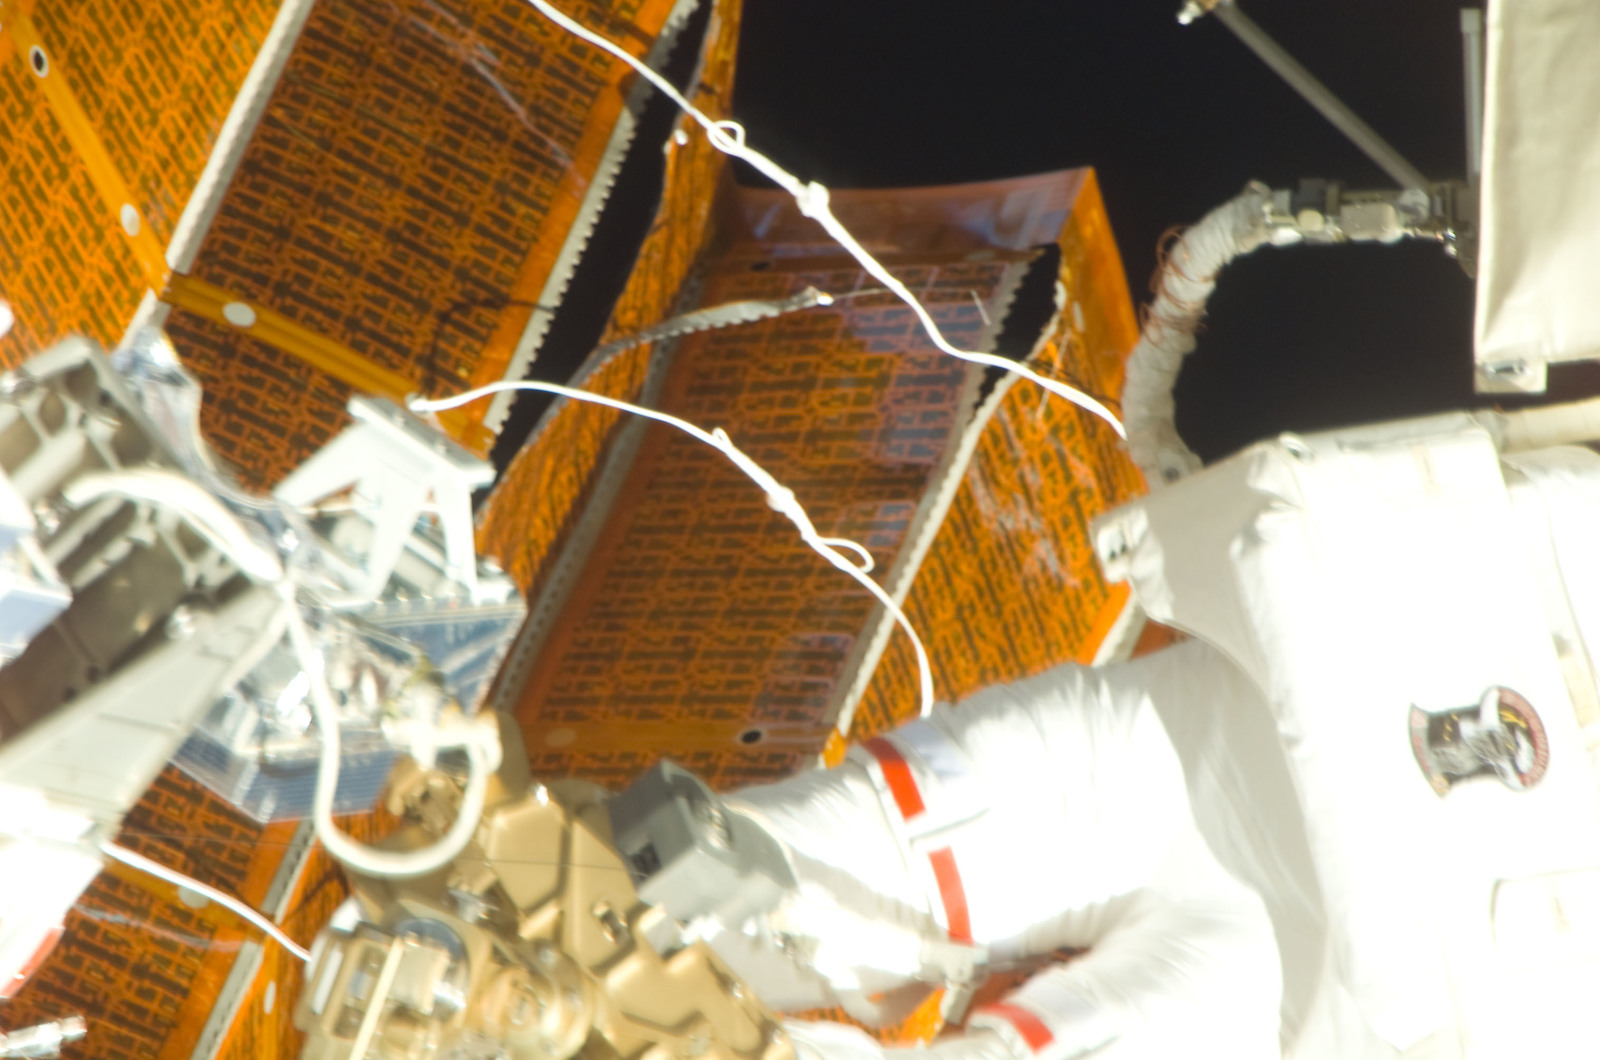 S120E008407 - STS-120 - EVA 4 - P6 4B solar array repair